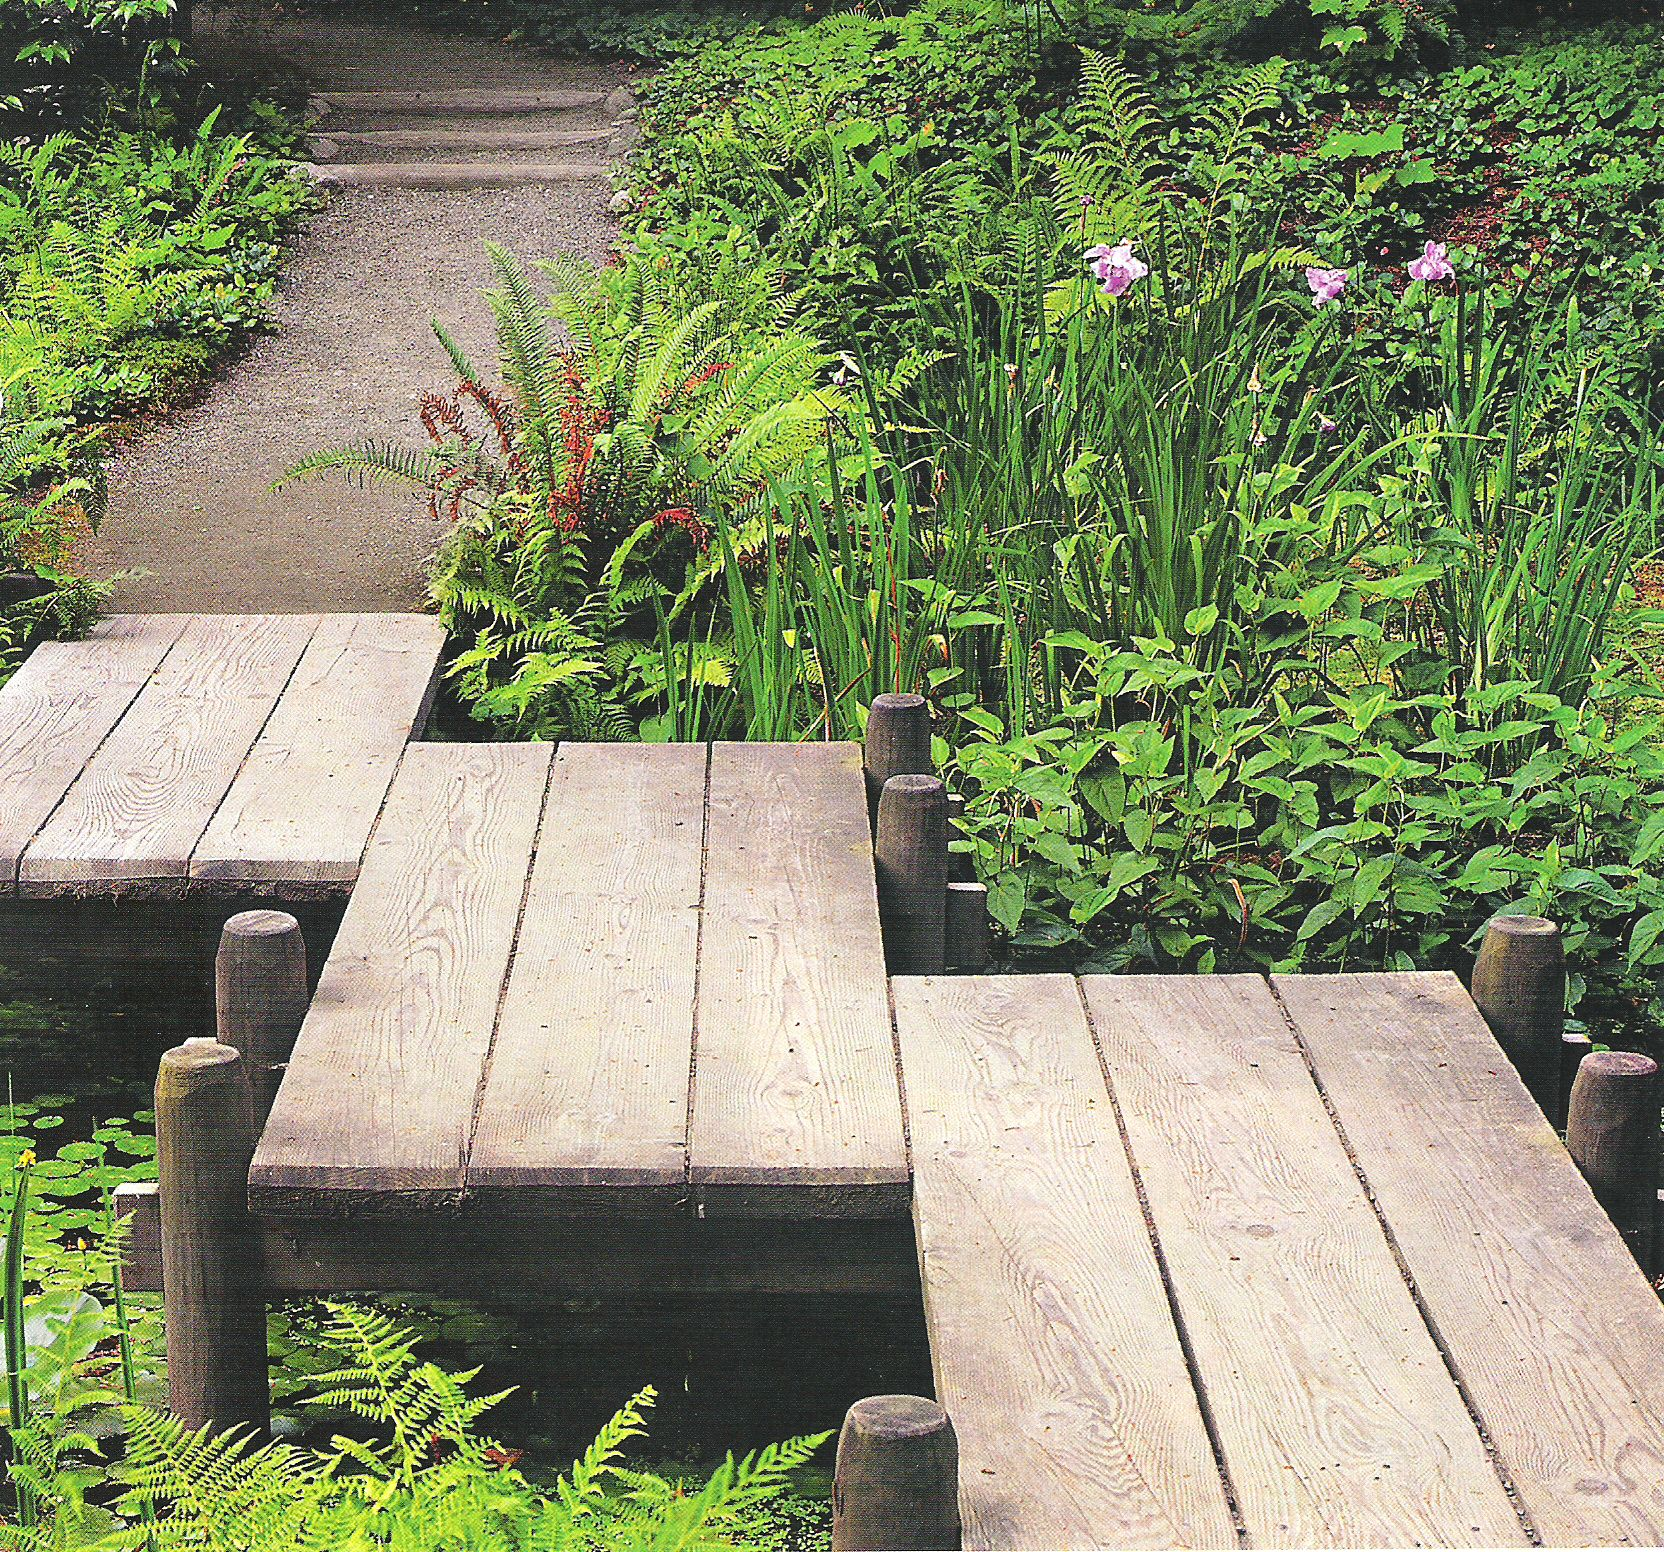 Simple Water Features For The Garden: An Easy Bridge Over The Water Feature